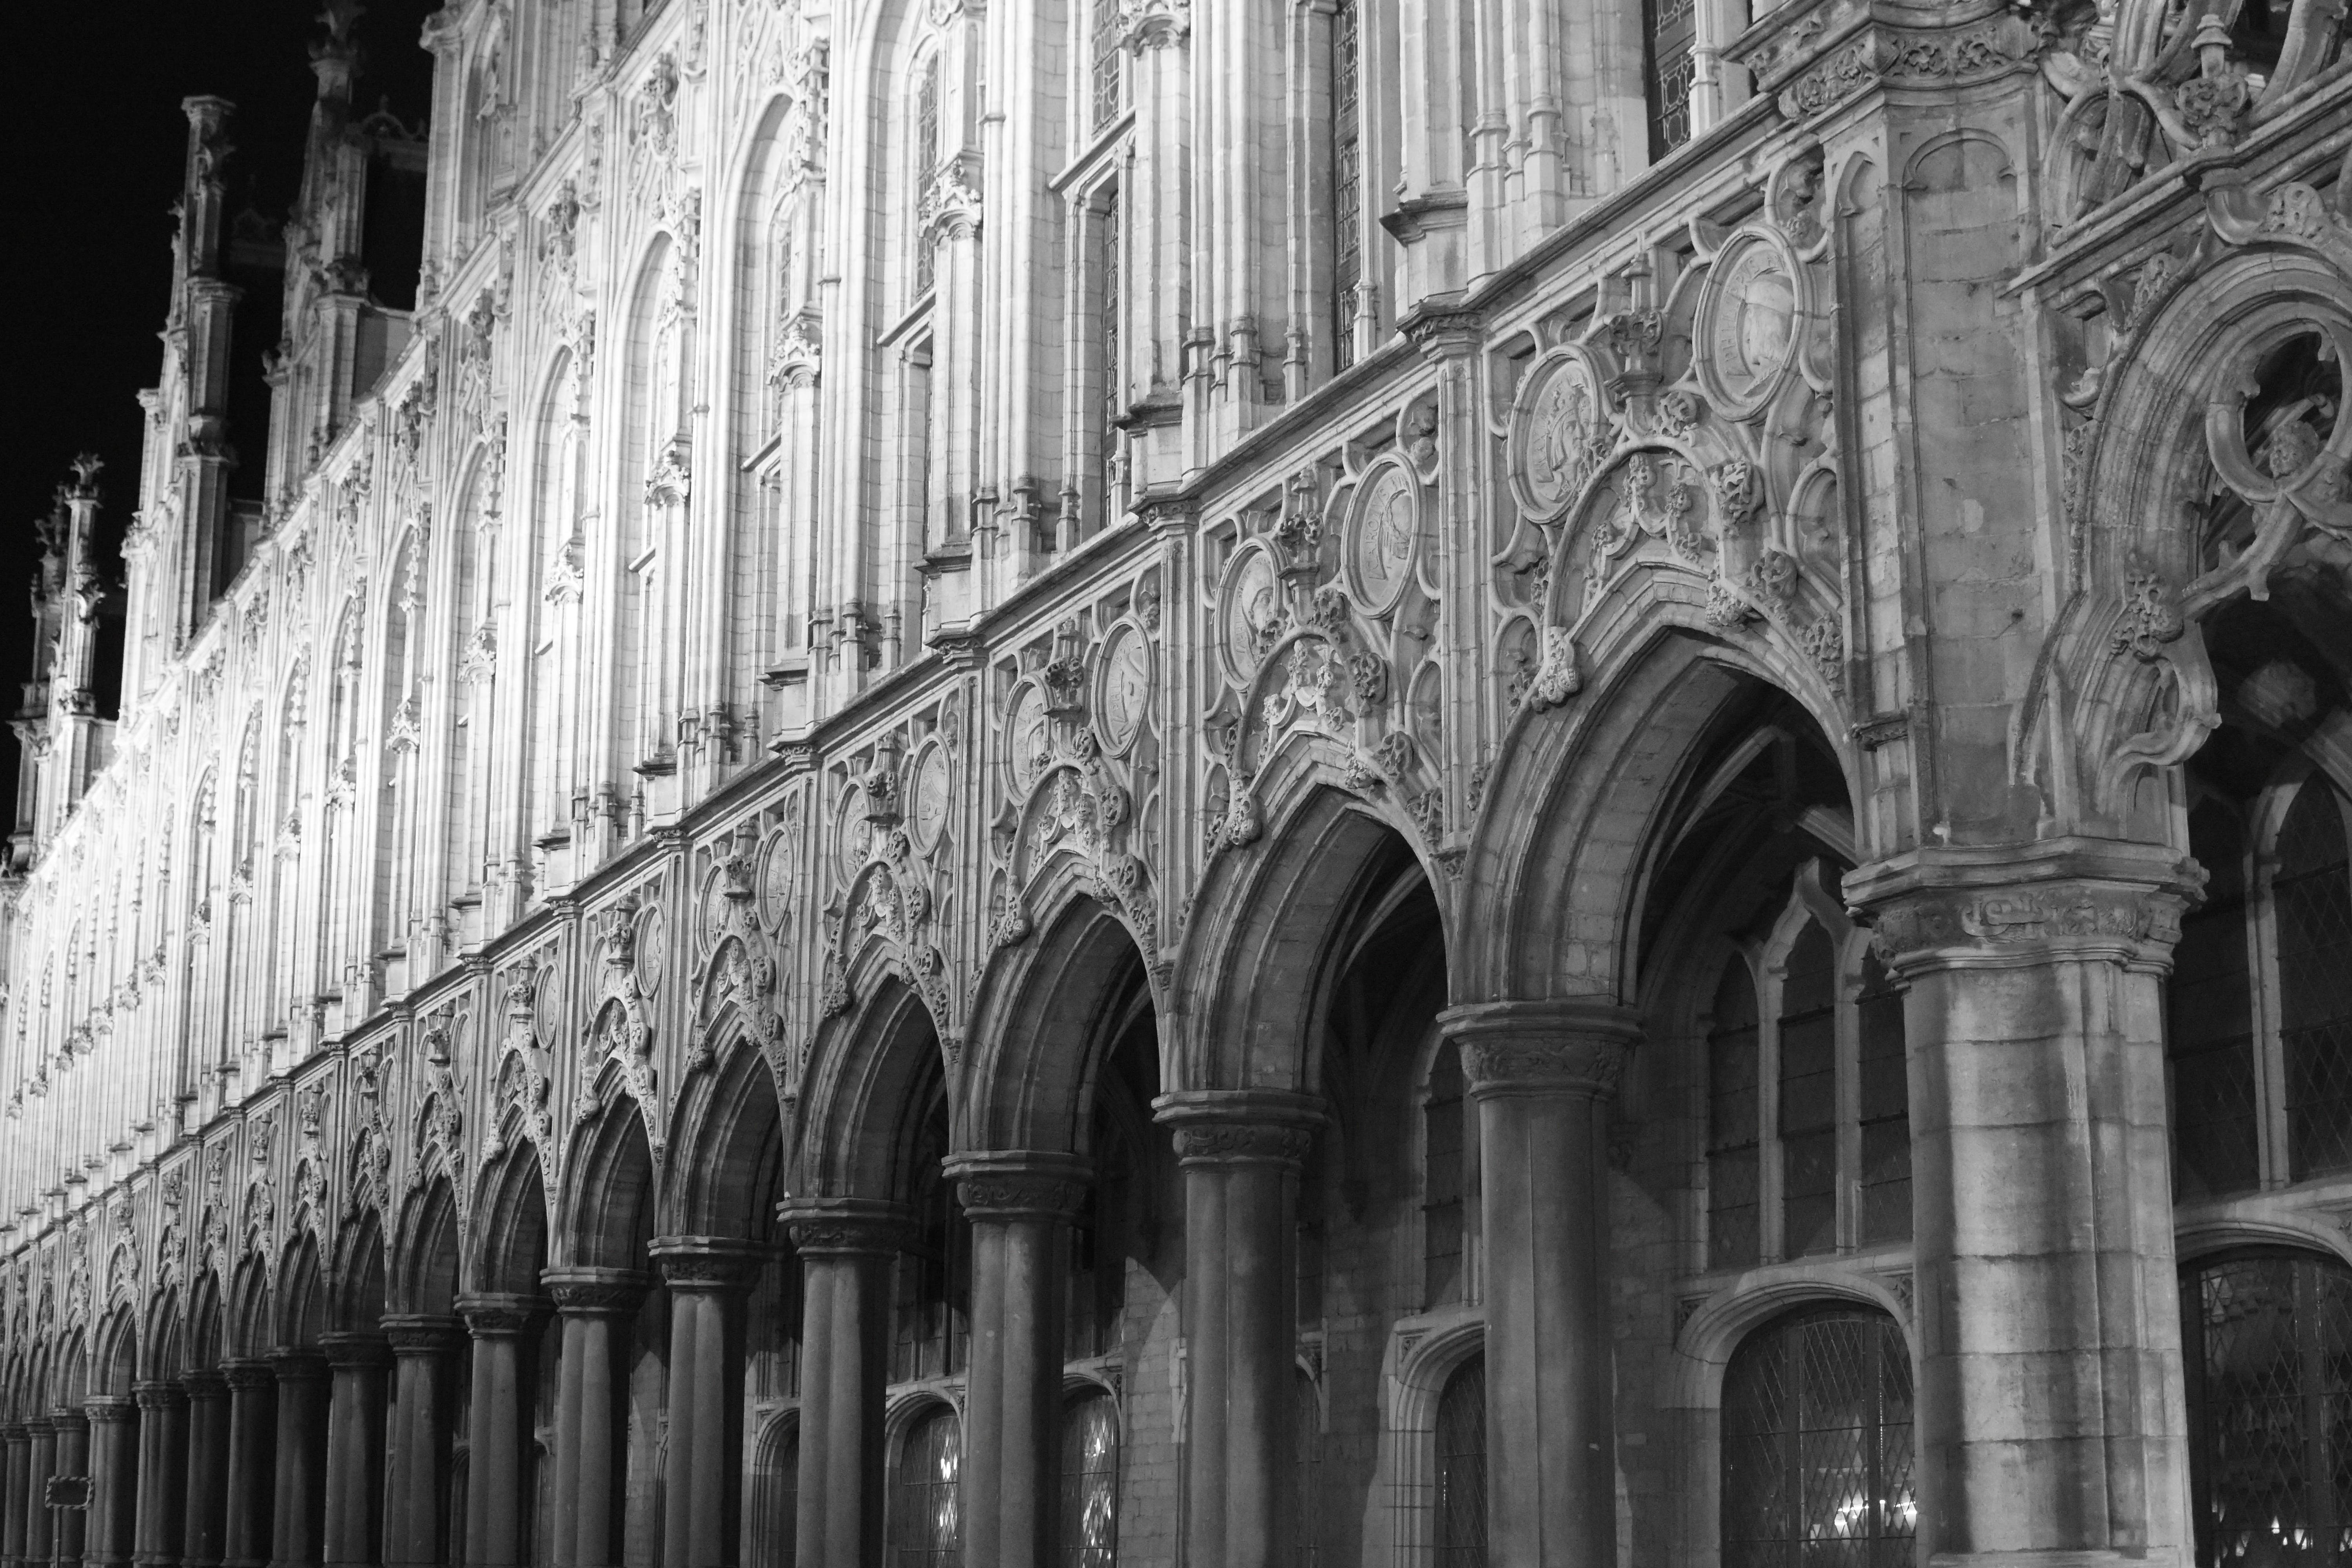 Grayscale Photo of Archways